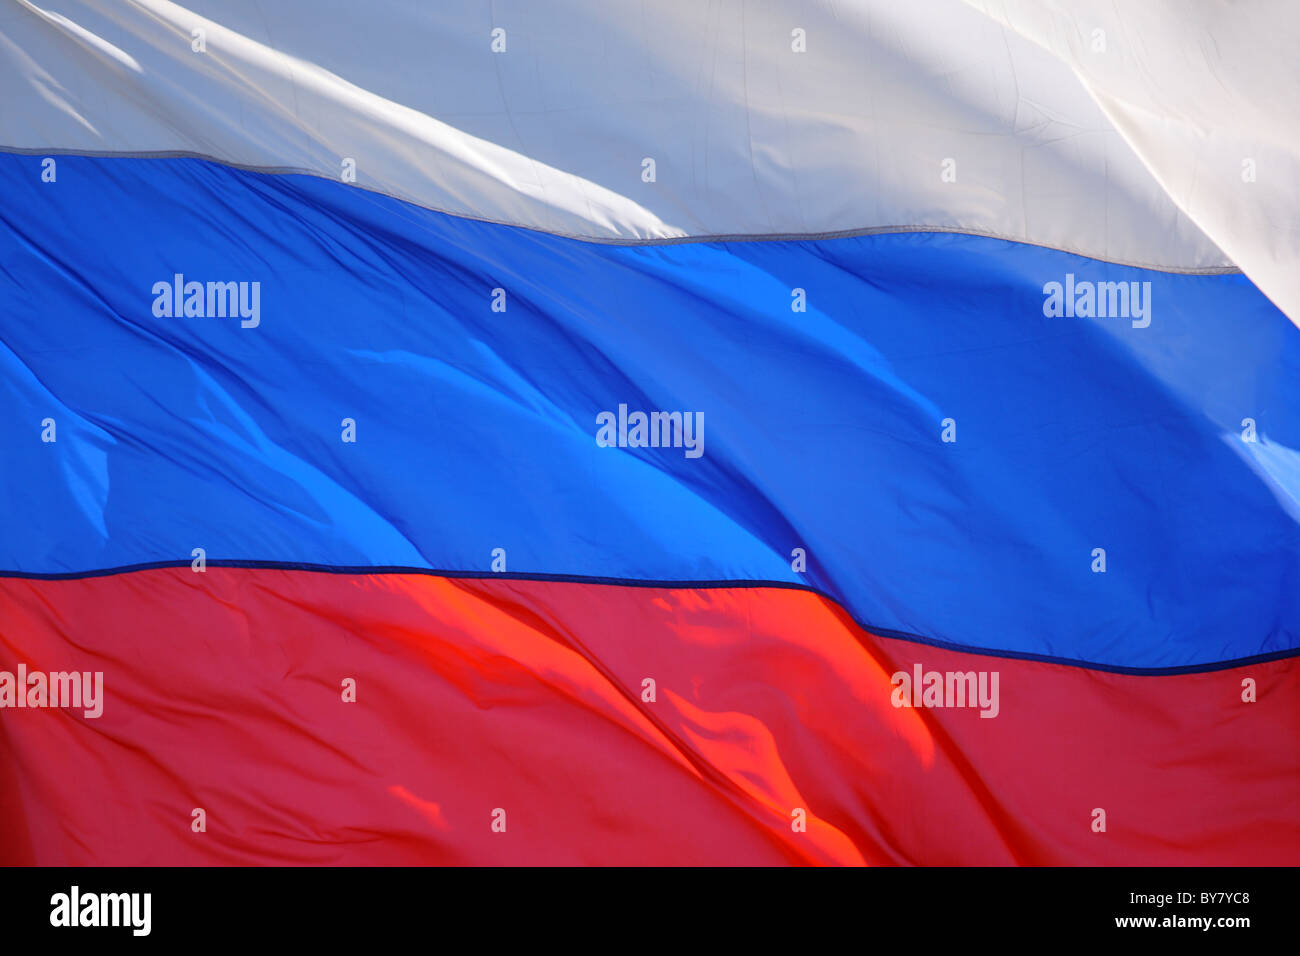 Flag of Russia - Stock Image